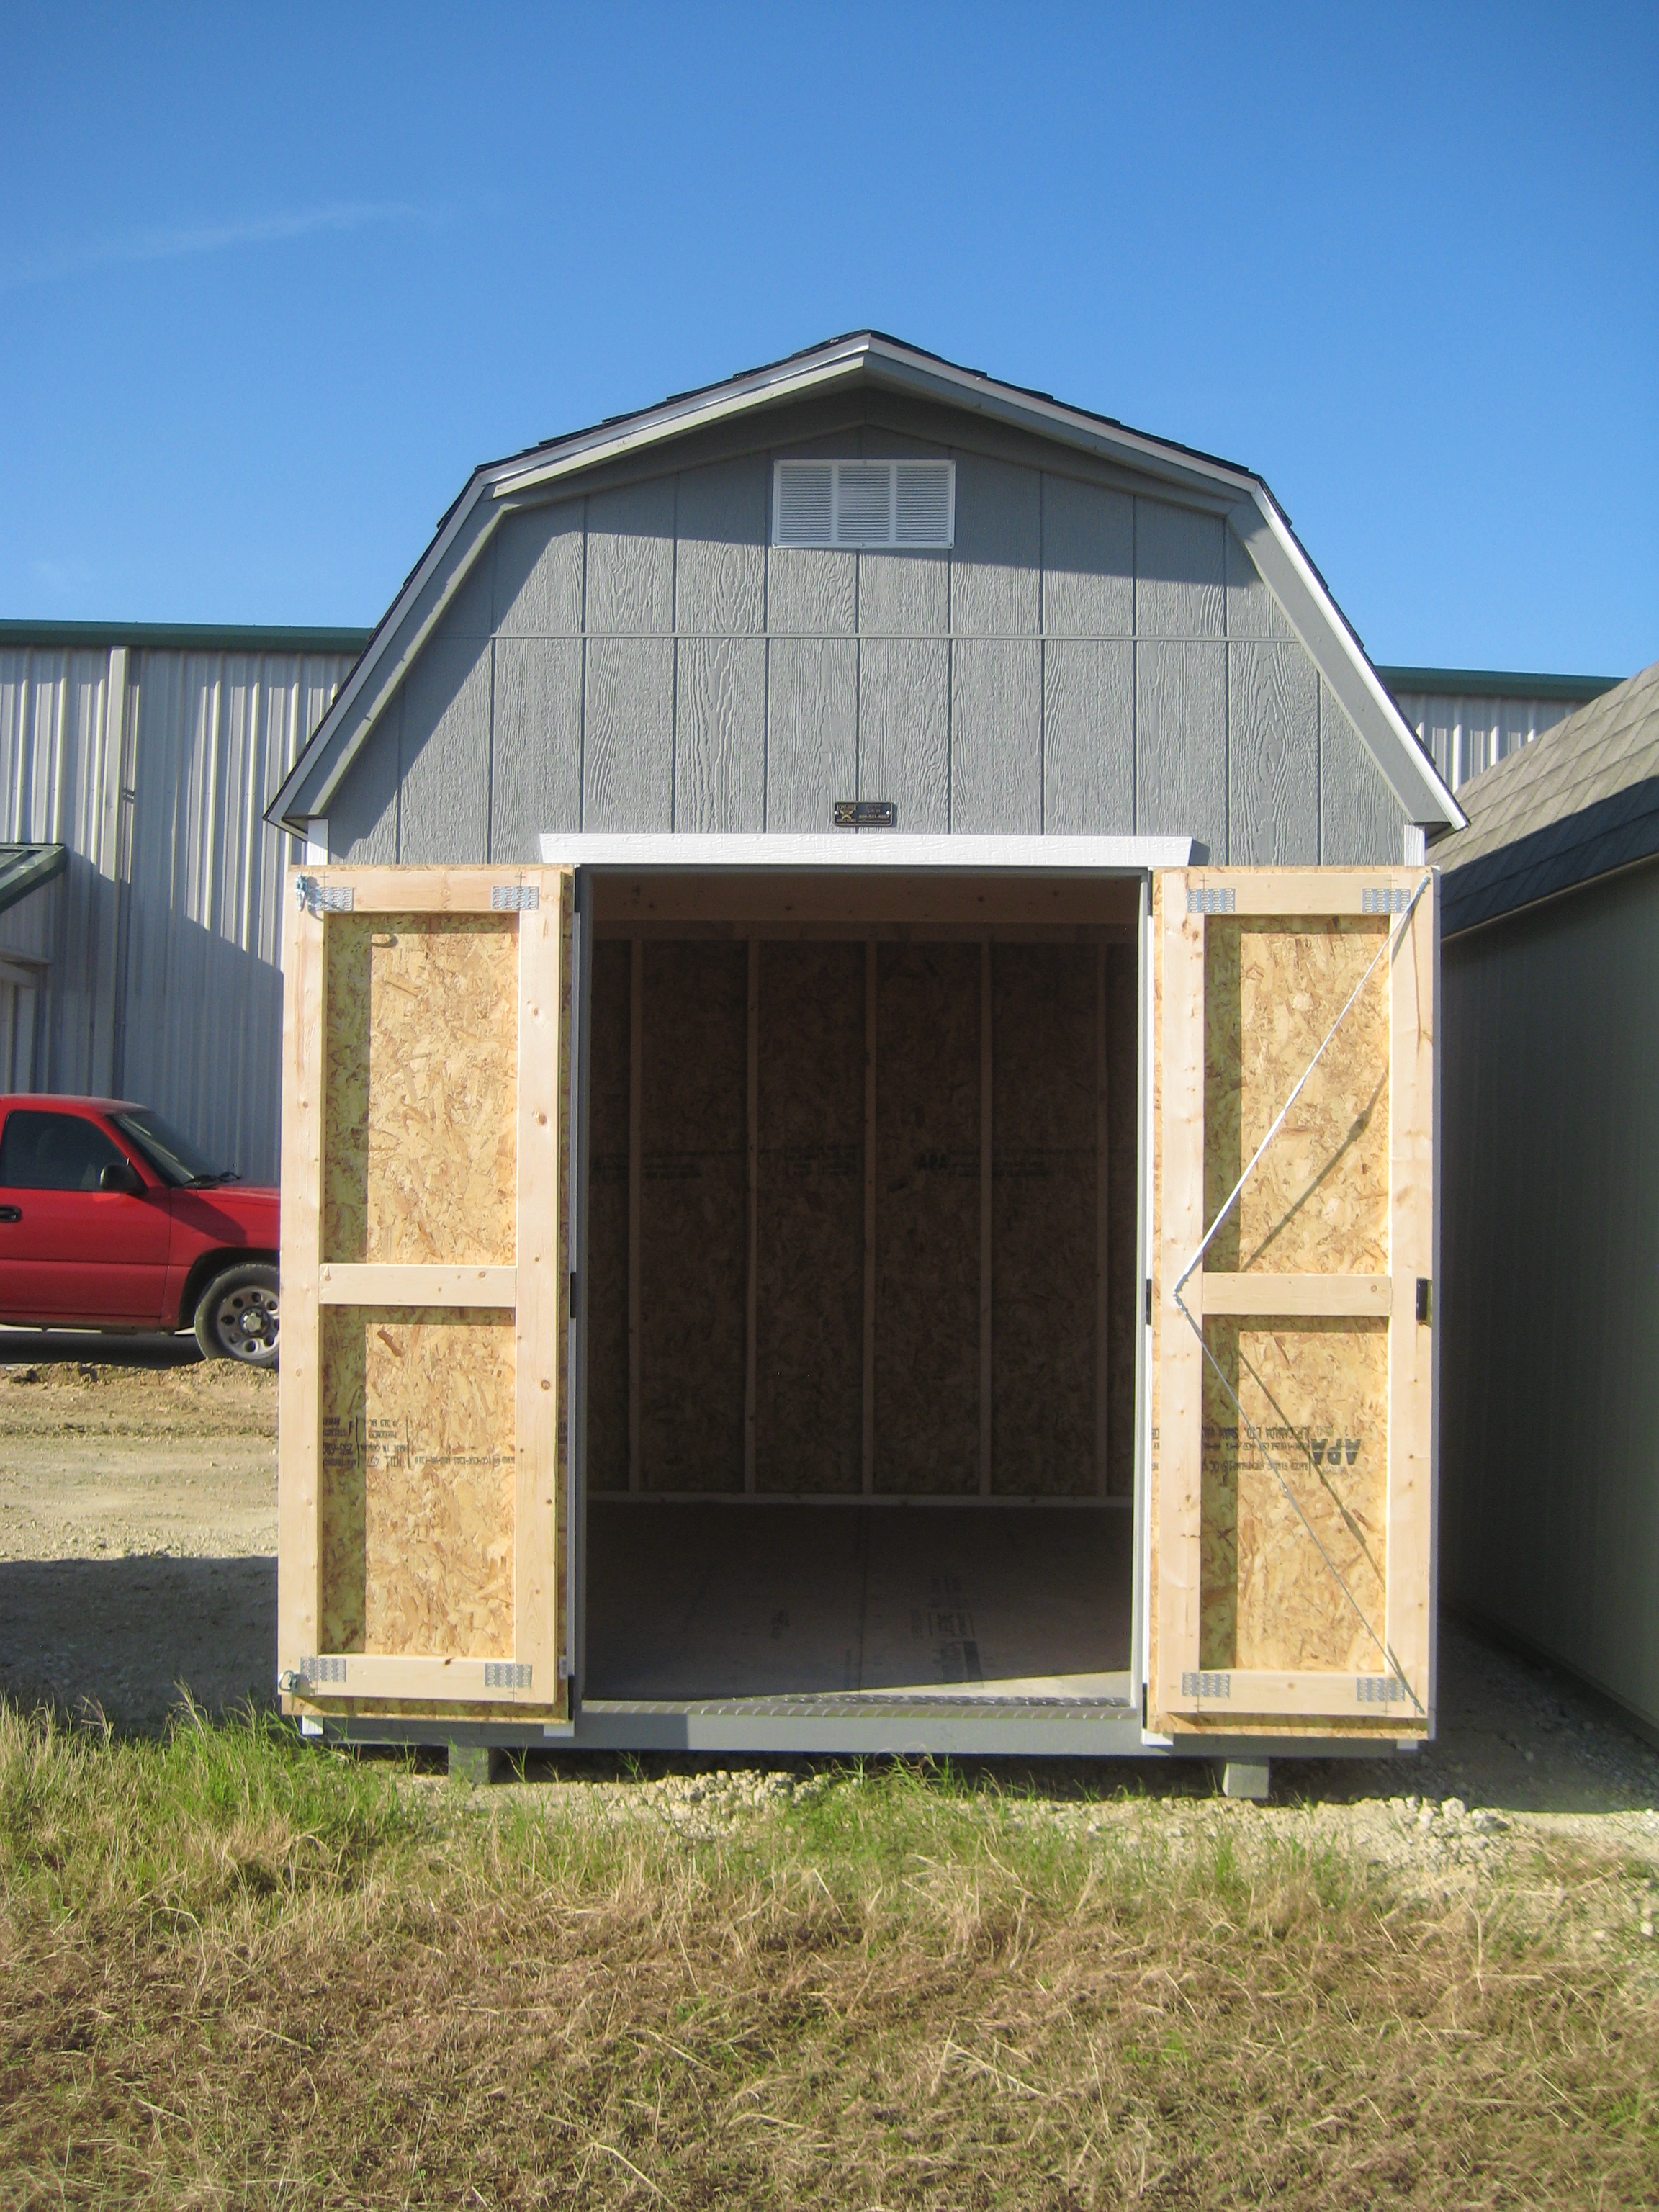 8x10 Dutchbarn For Sale In Stock Sheds And More 392112918